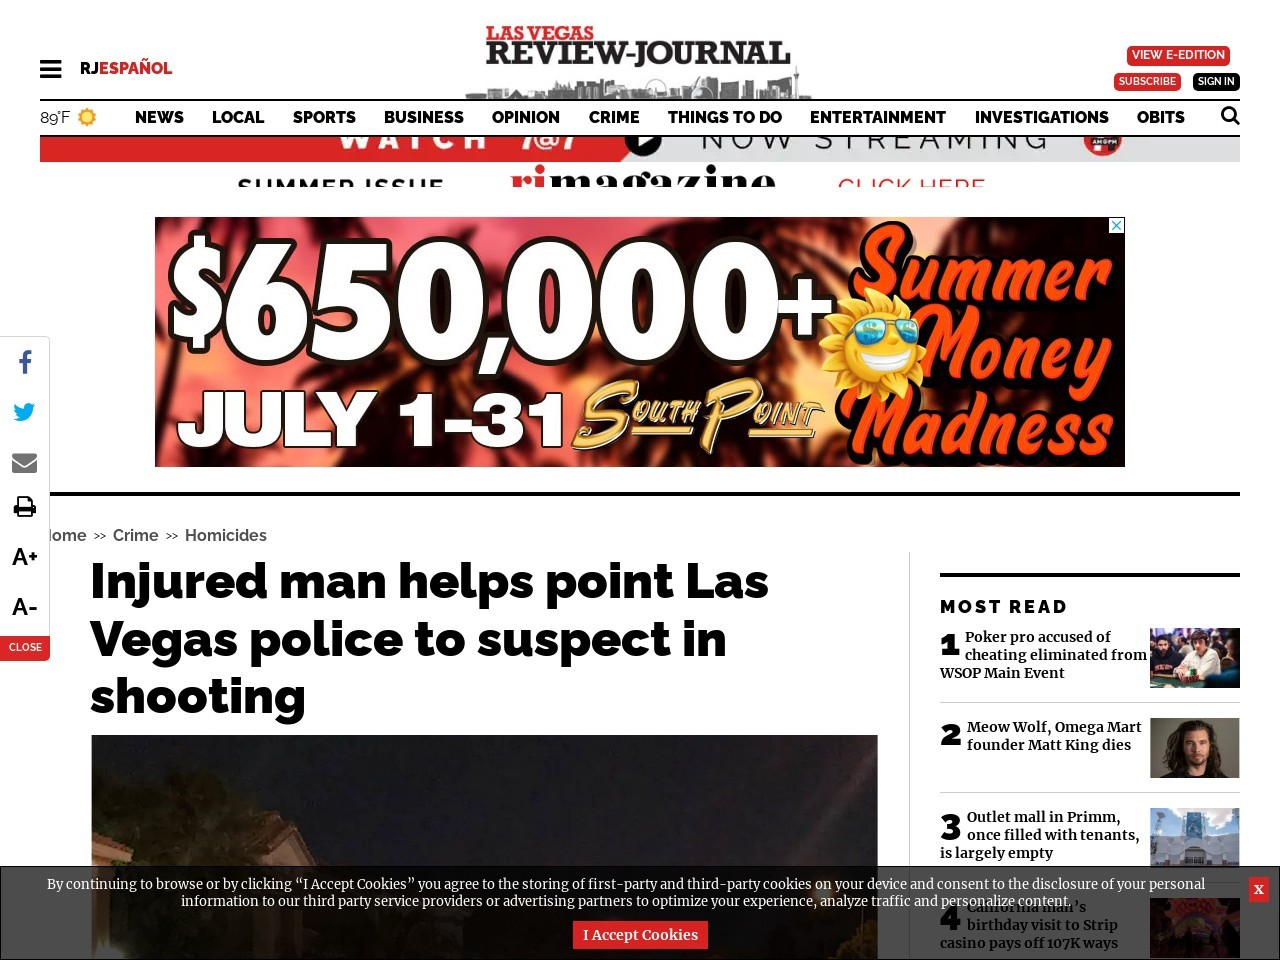 Injured man helps point Las Vegas police to suspect in shooting